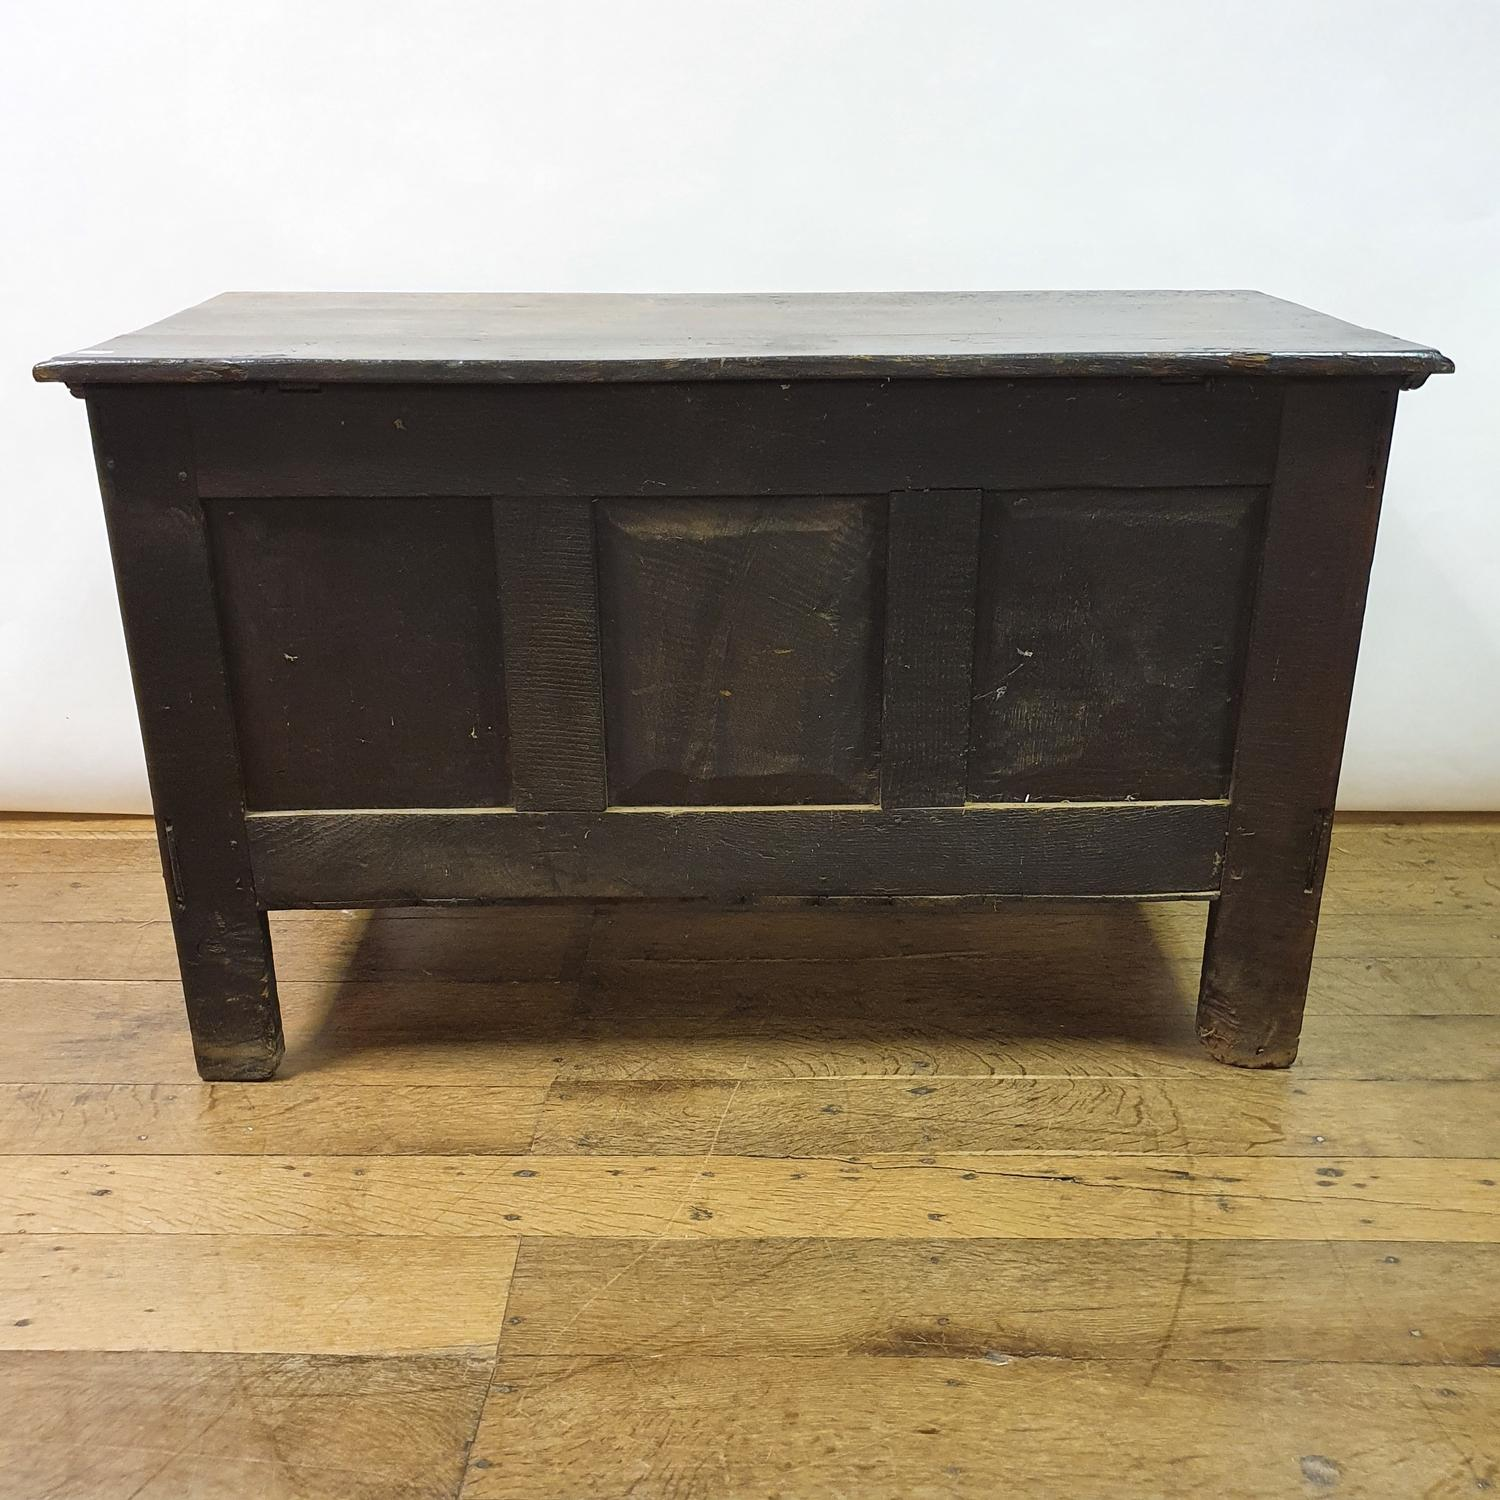 An 18th century oak coffer, with later carved decoration, 123 cm wide - Image 5 of 5